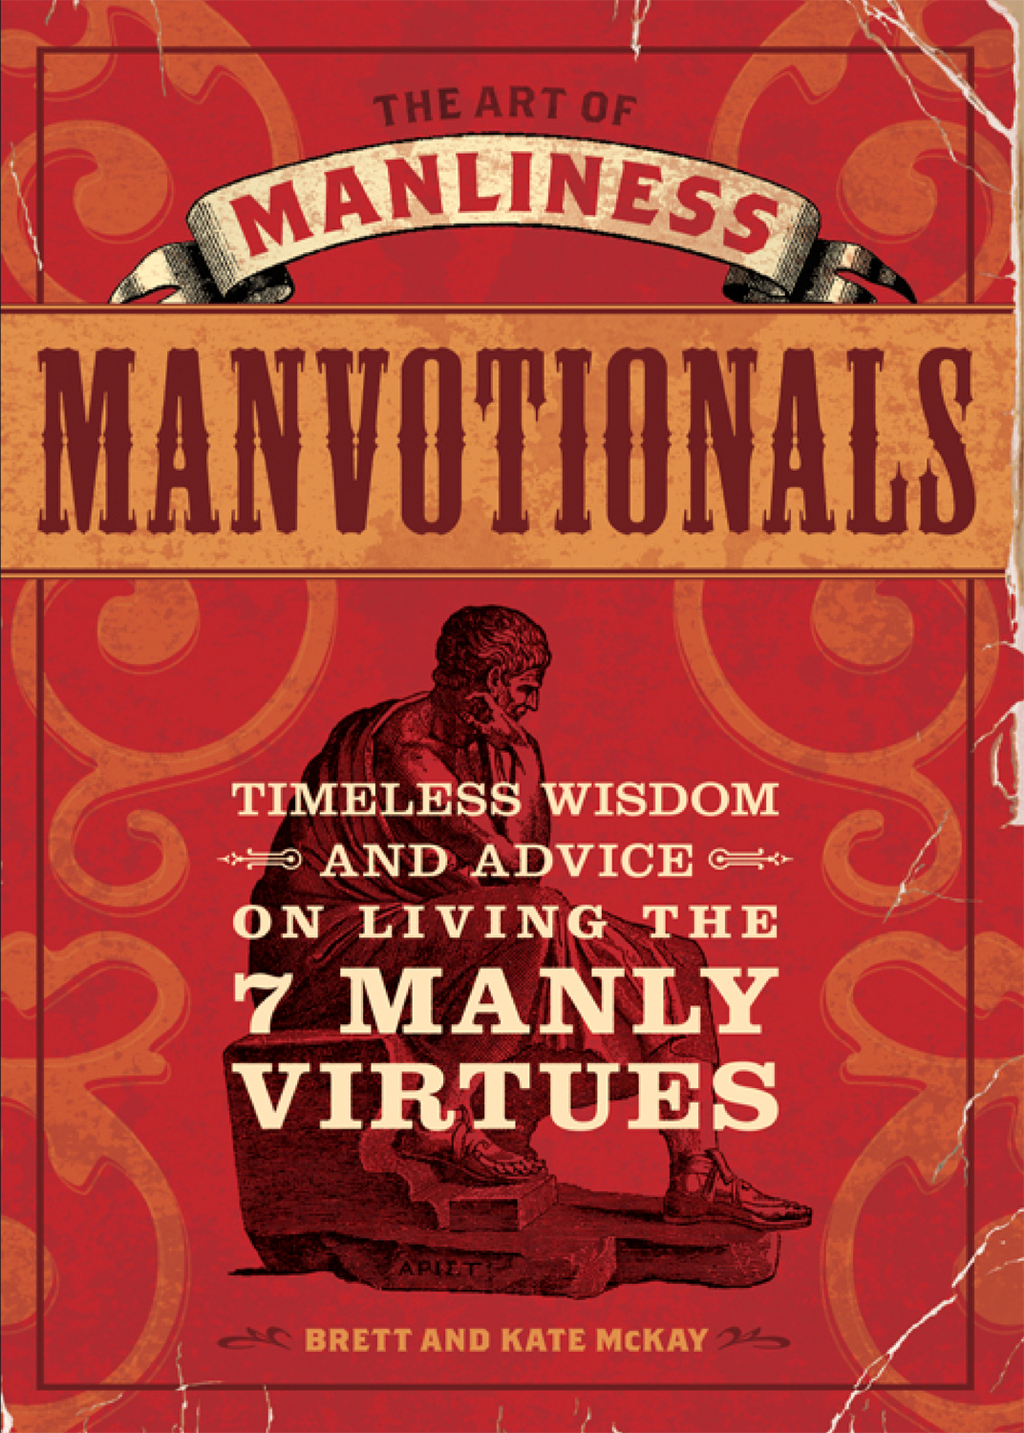 The Art of Manliness - Manvotionals Timeless Wisdom and Advice on Living the 7 Manly Virtues